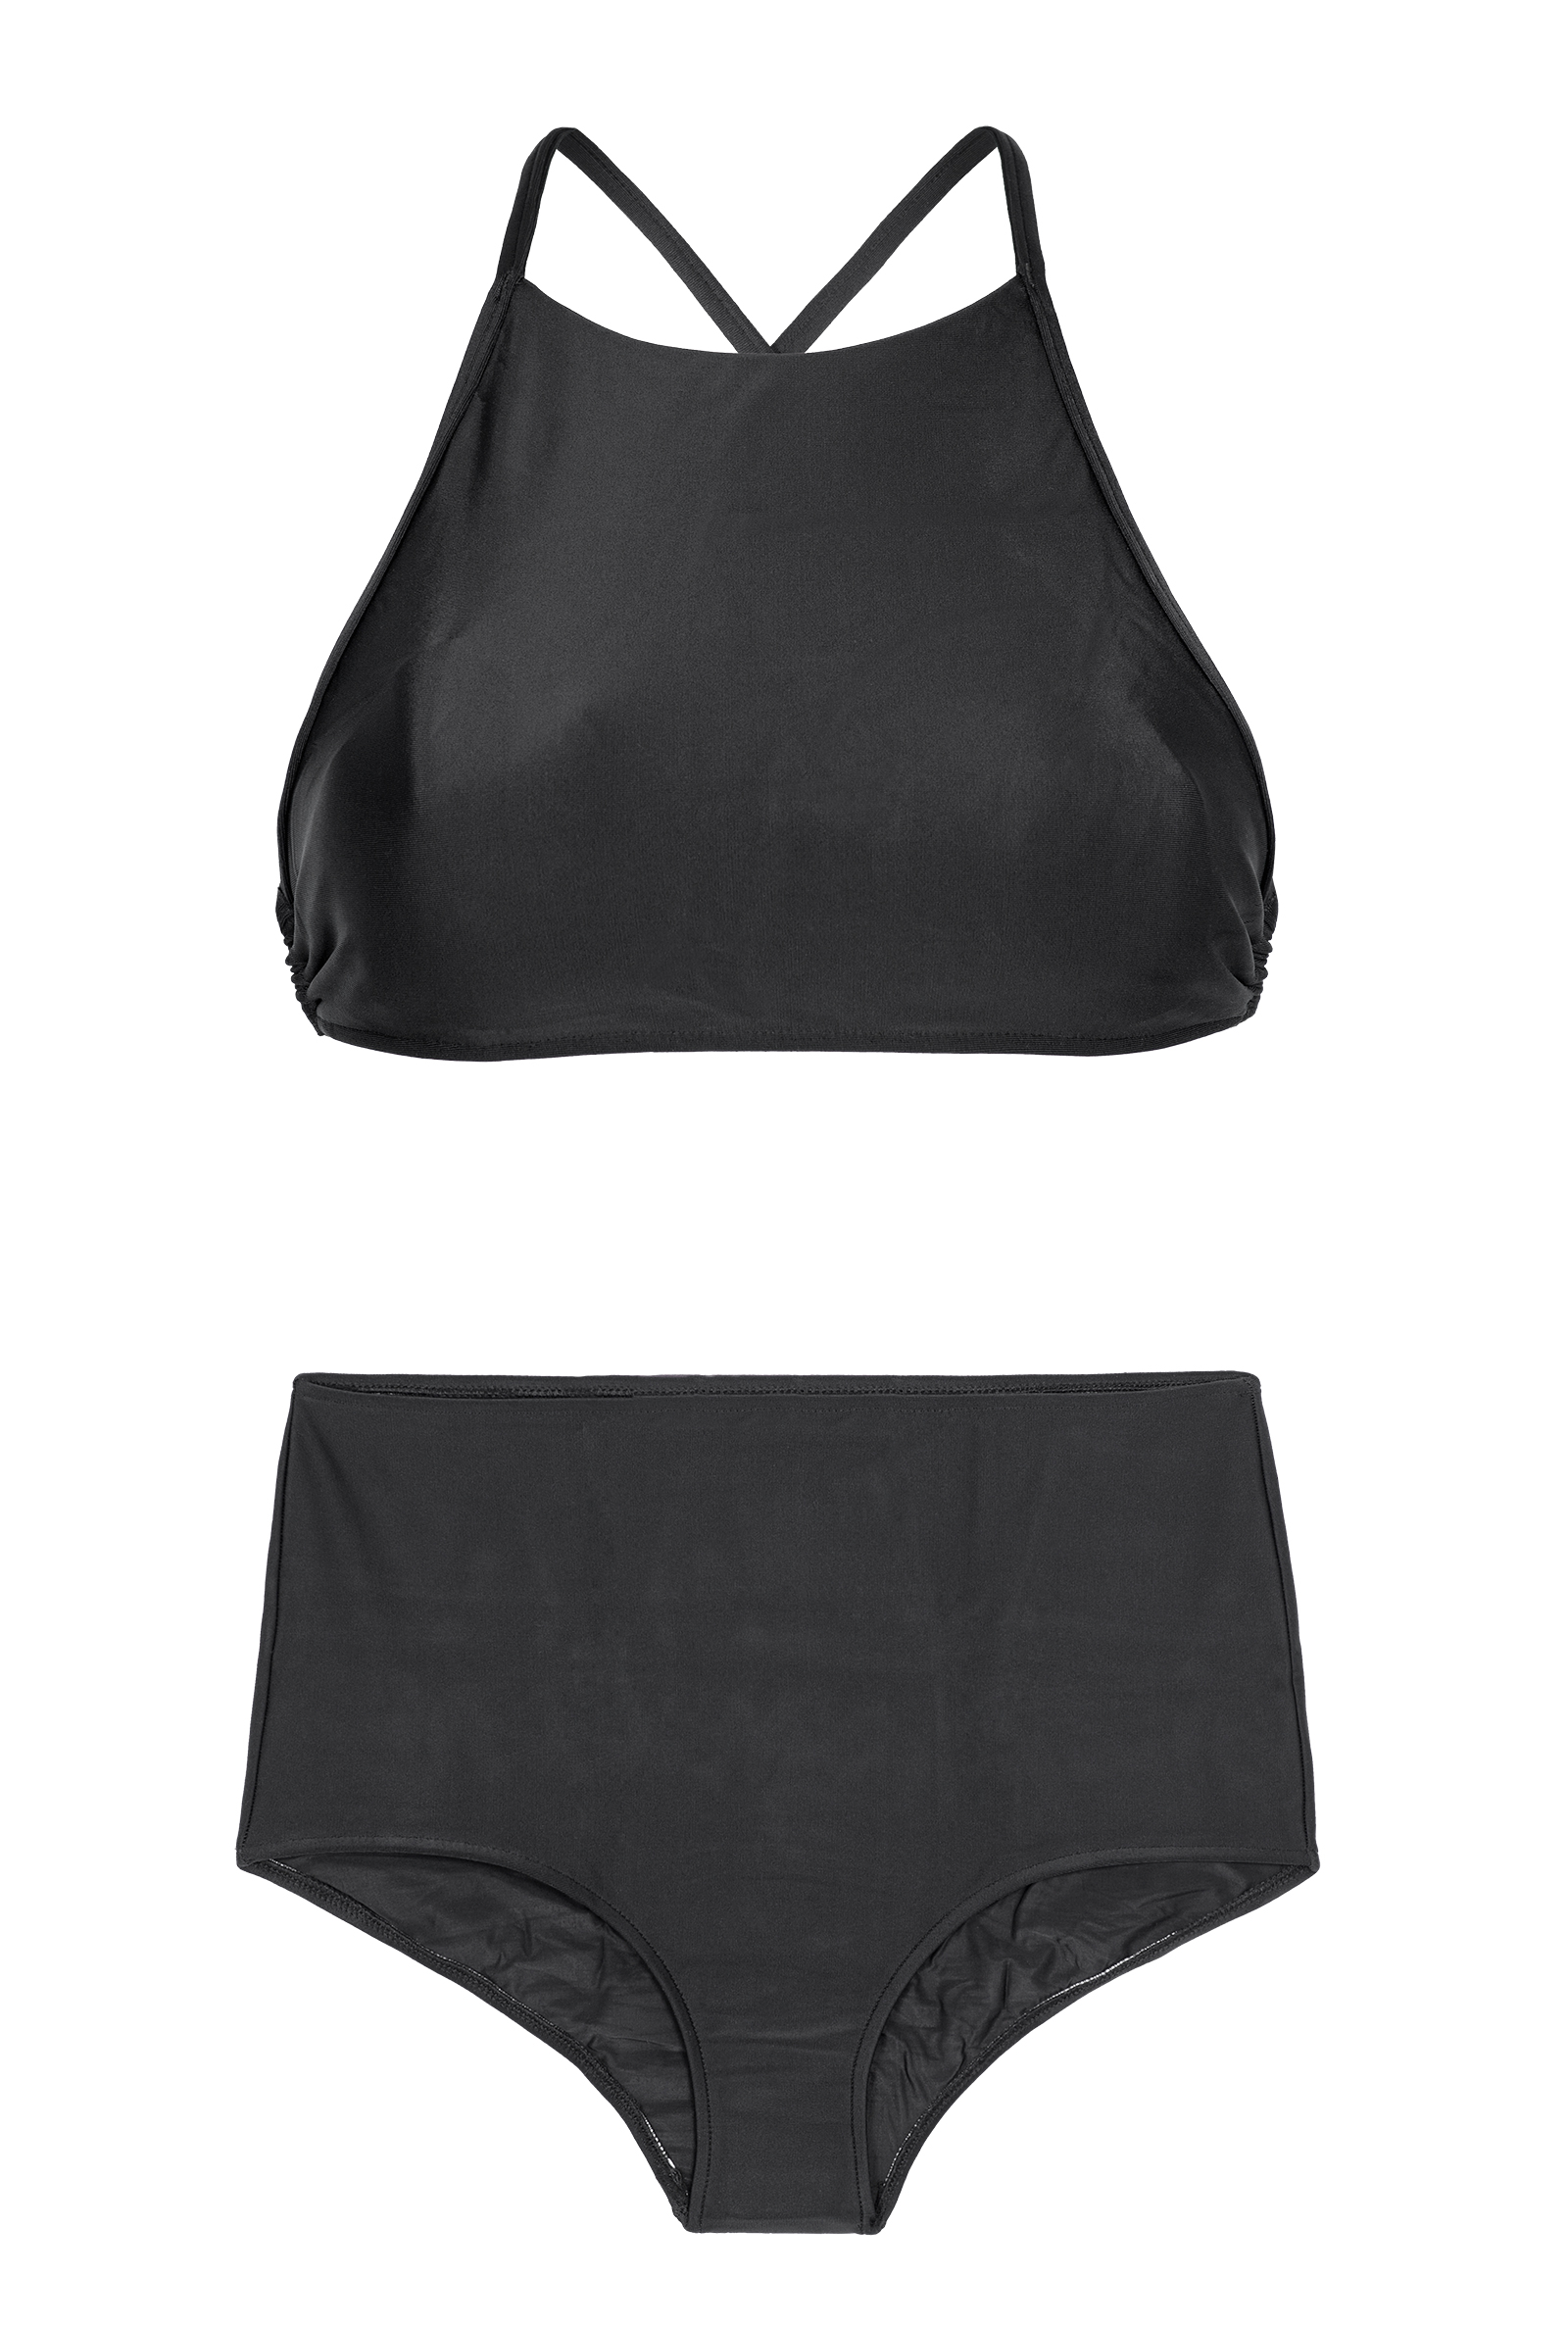 f8fe5b3a6a Black High-waisted Bathing Suit With Crop Top - Noiti - Rio de Sol